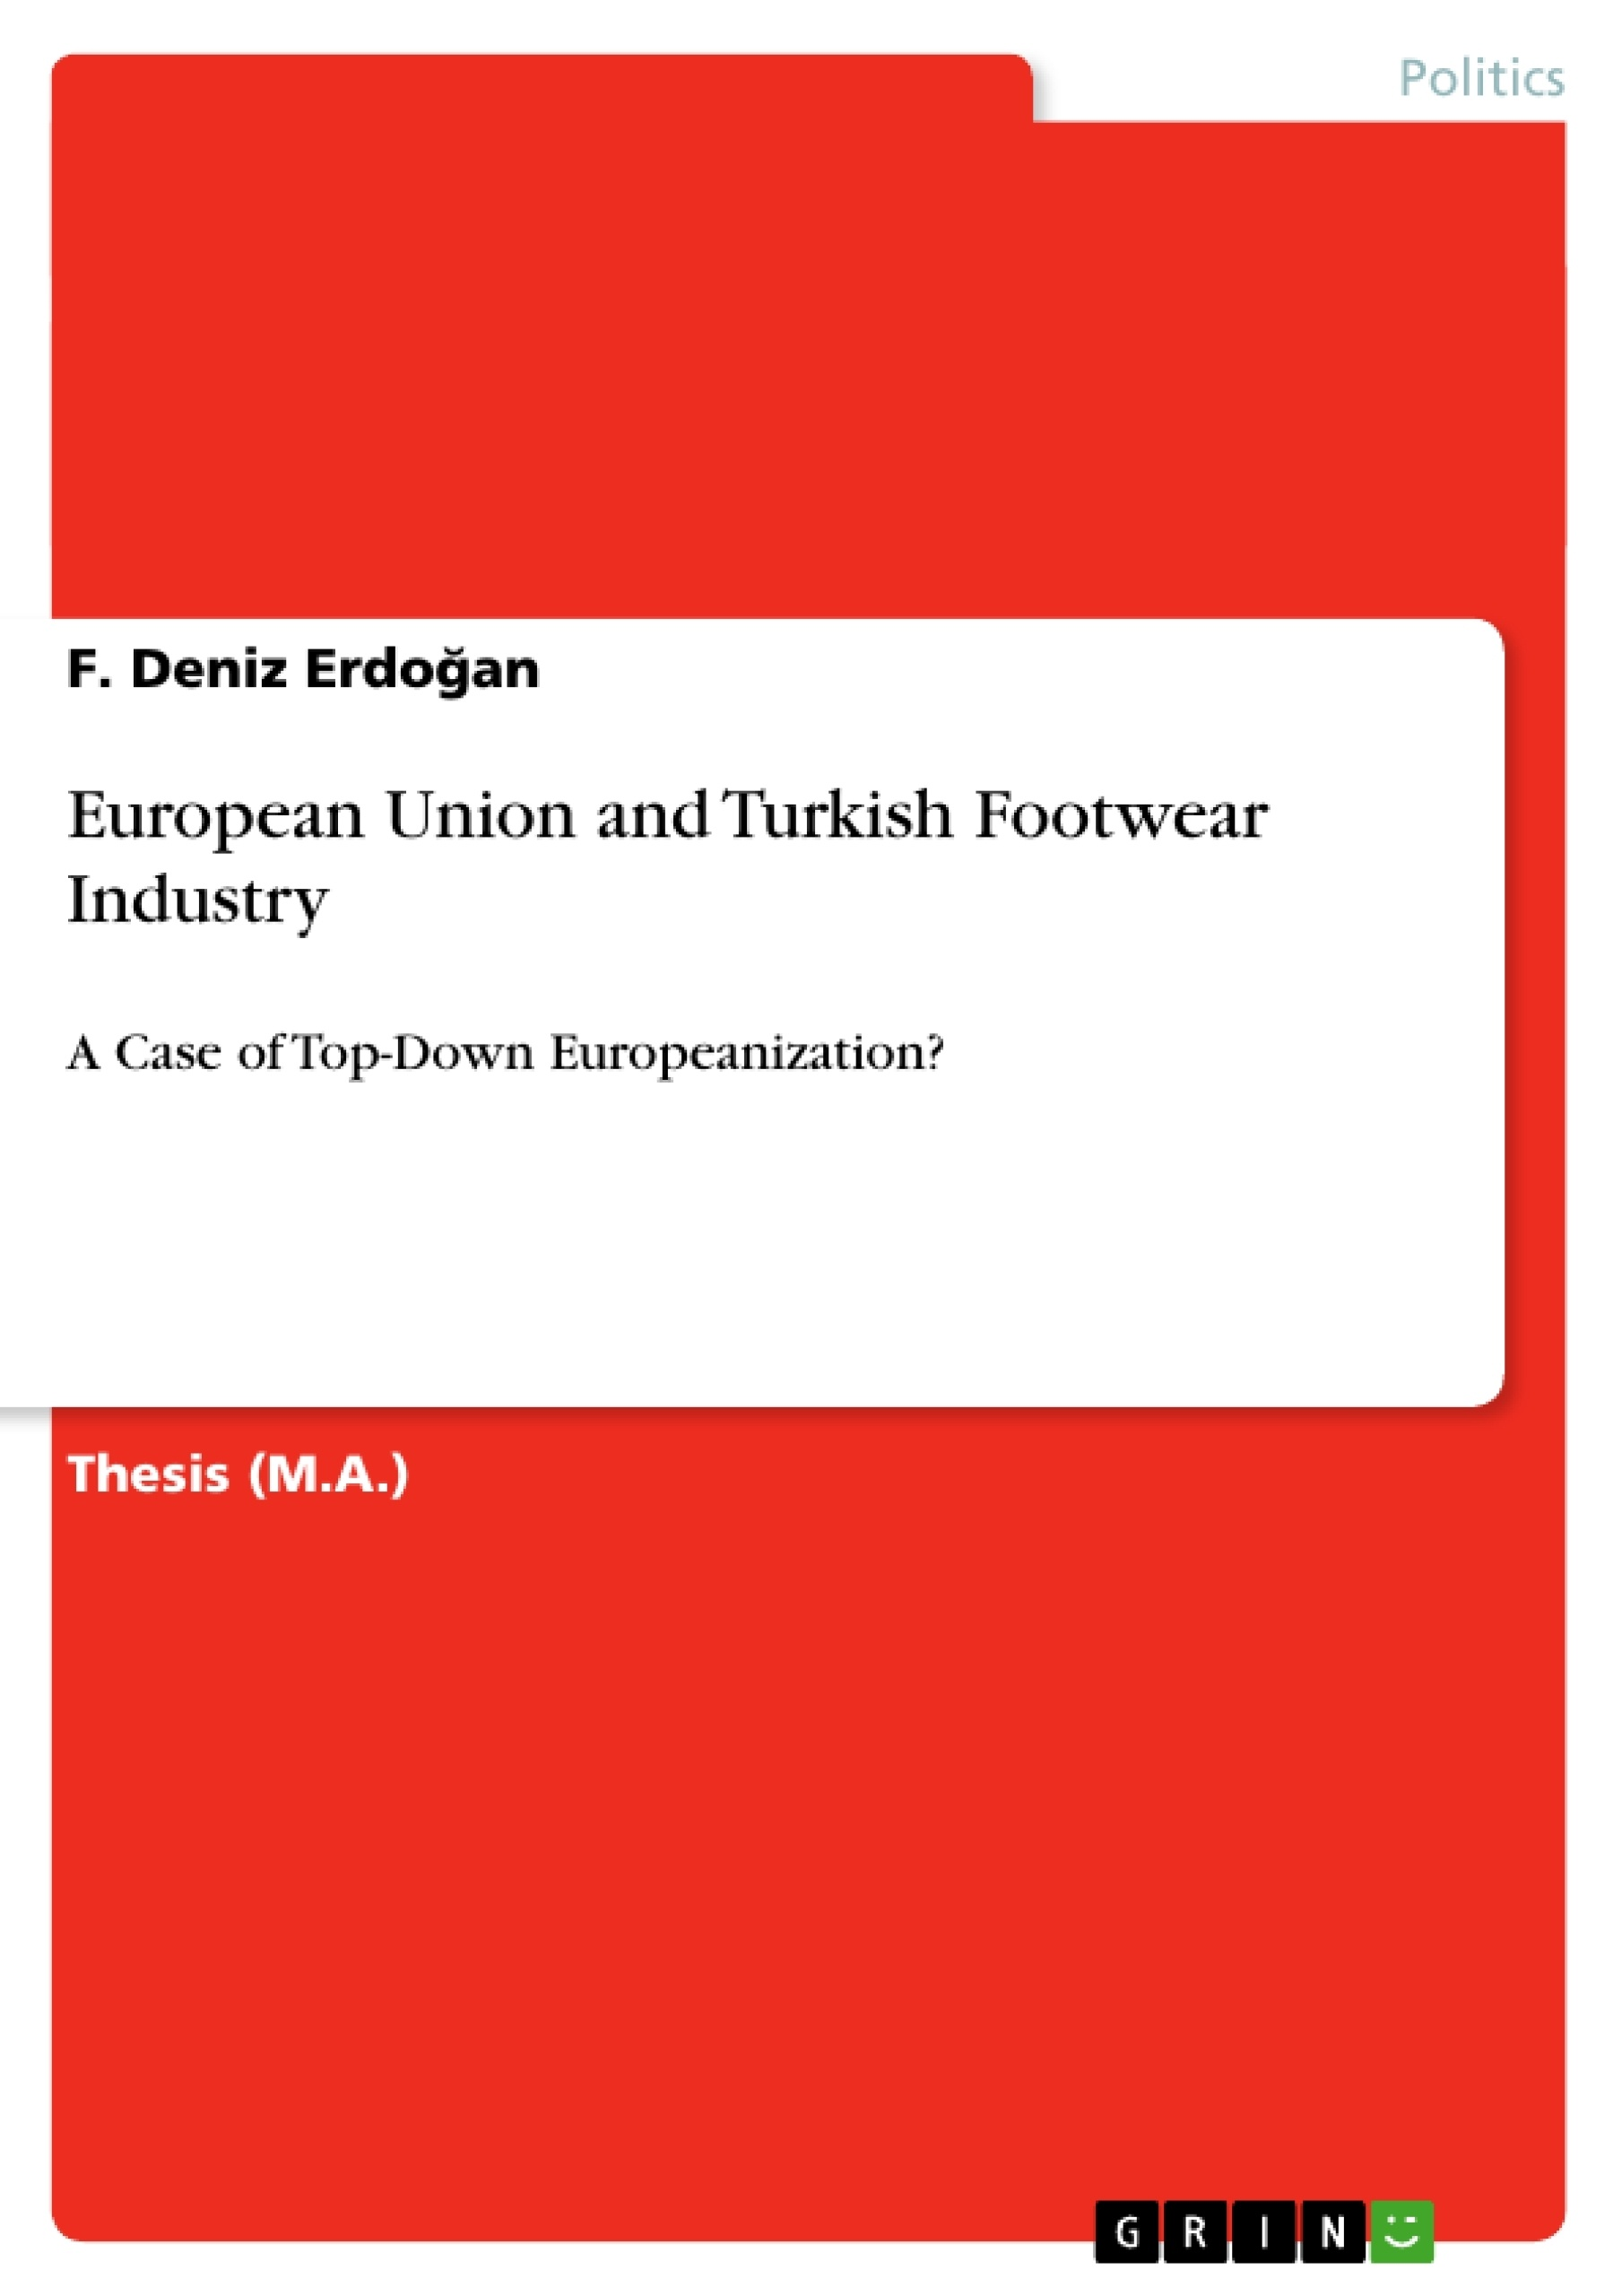 role of eu trade policy in liberalization economics essay One group of papers deals with globalization in terms of what the tunisia and the european union economics and politics of trade policy.